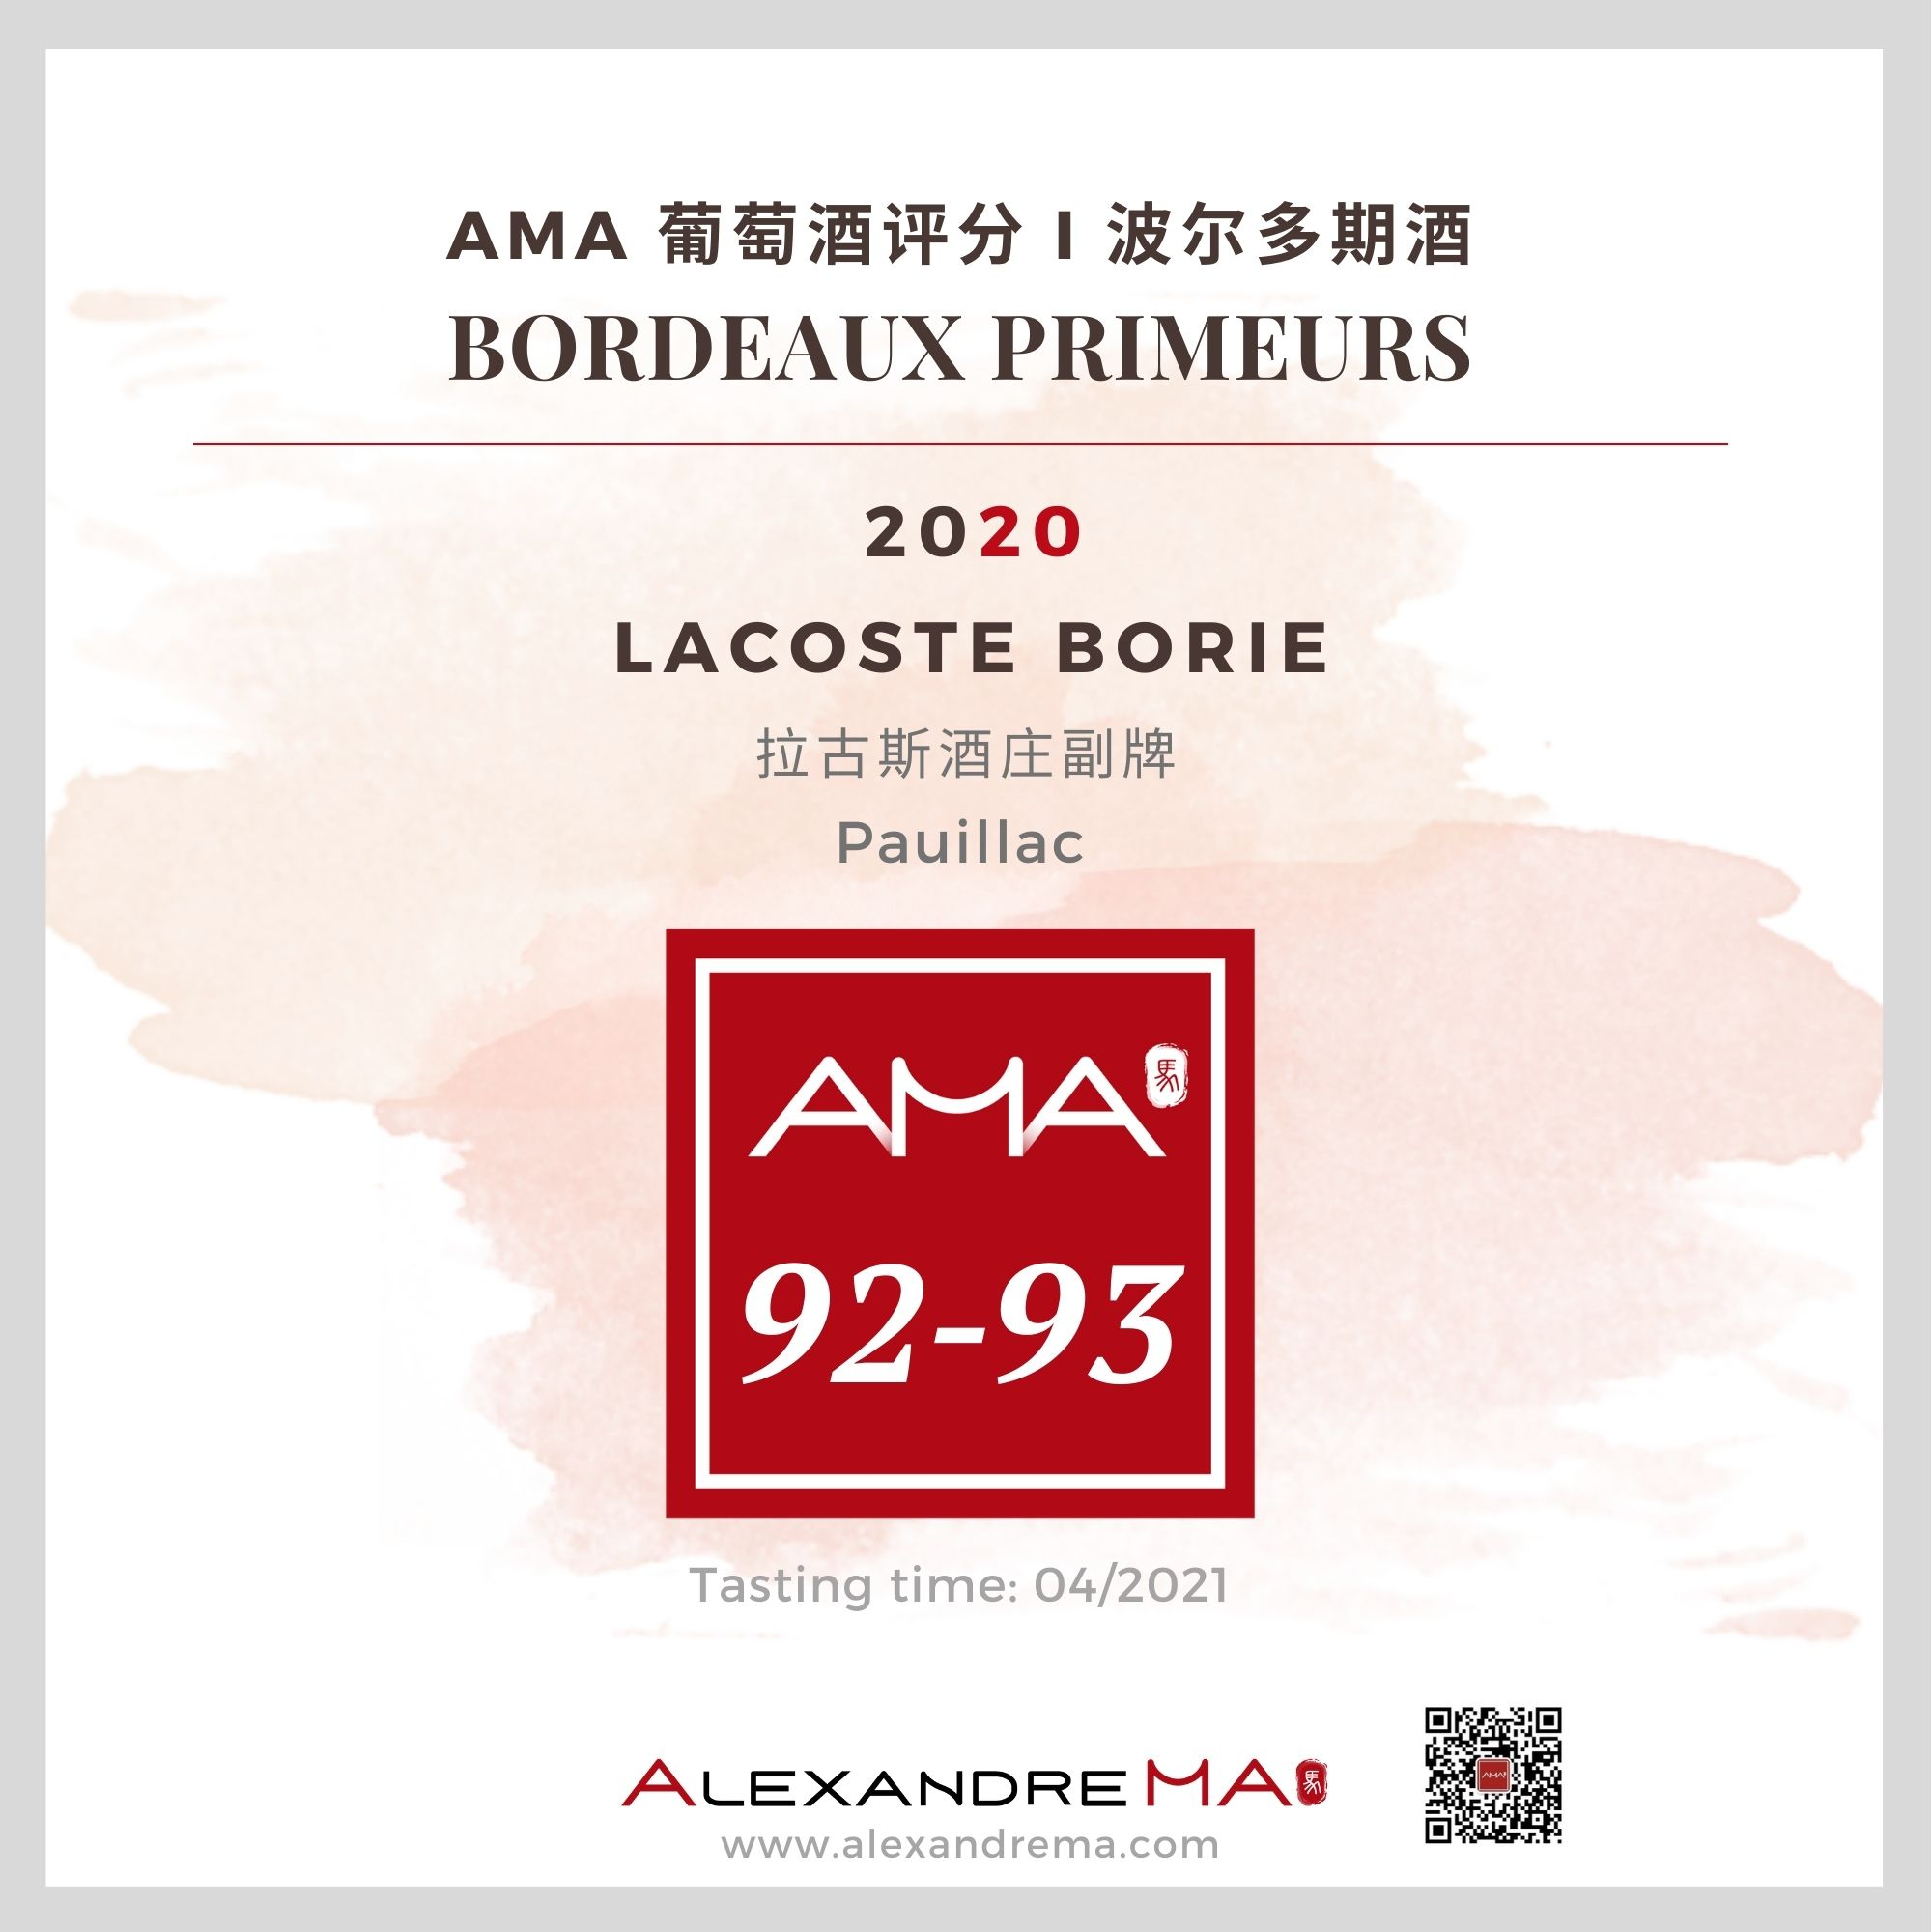 Château Grand-Puy LacosteLacoste Borie – Red – 2020 - Alexandre MA